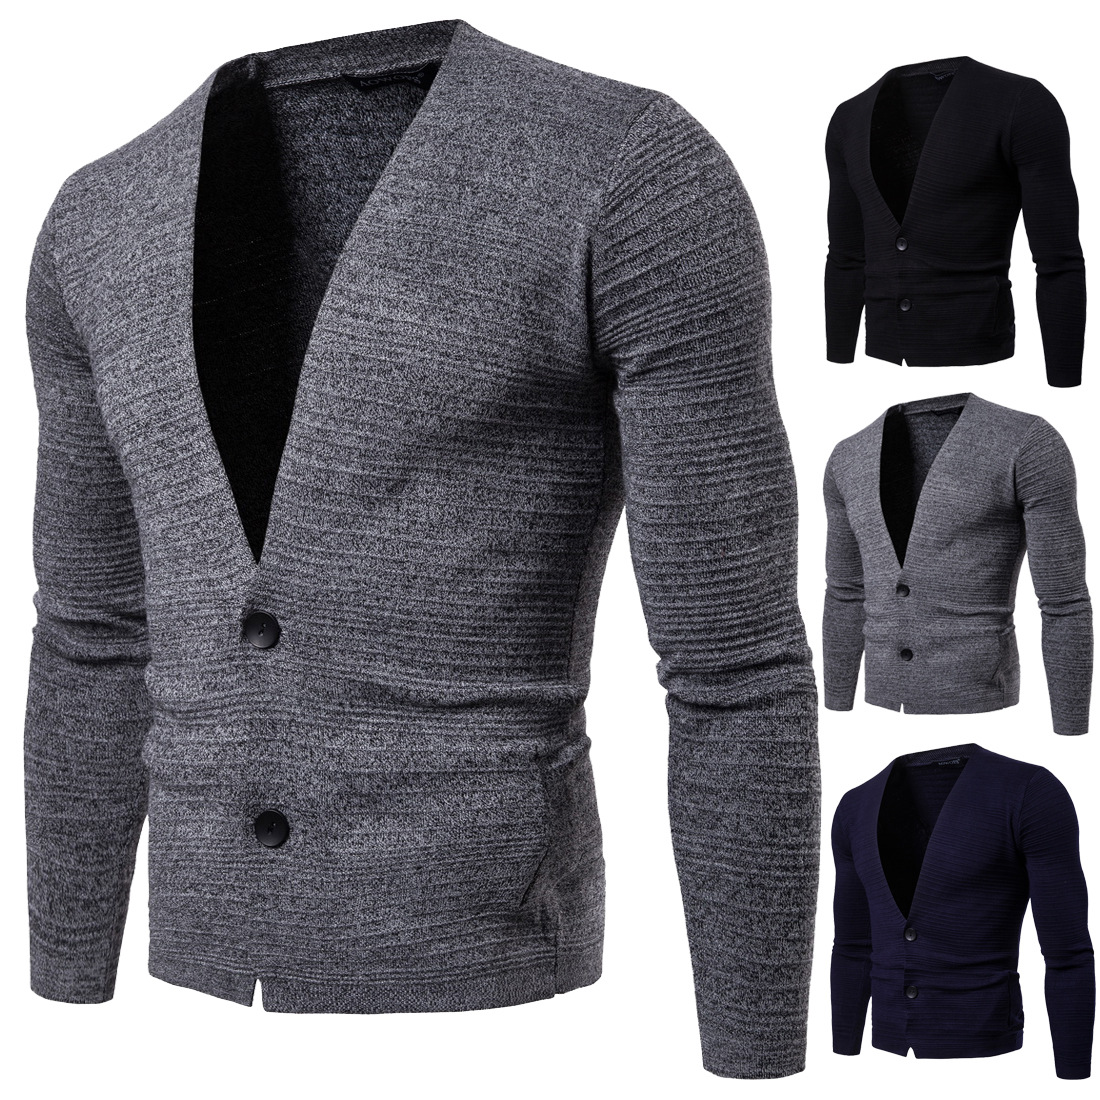 Sweater Men 2018 Autumn New Young Men's Slim Knitted Cardigan Sweater Dress V-neck Male Clothing Fashion